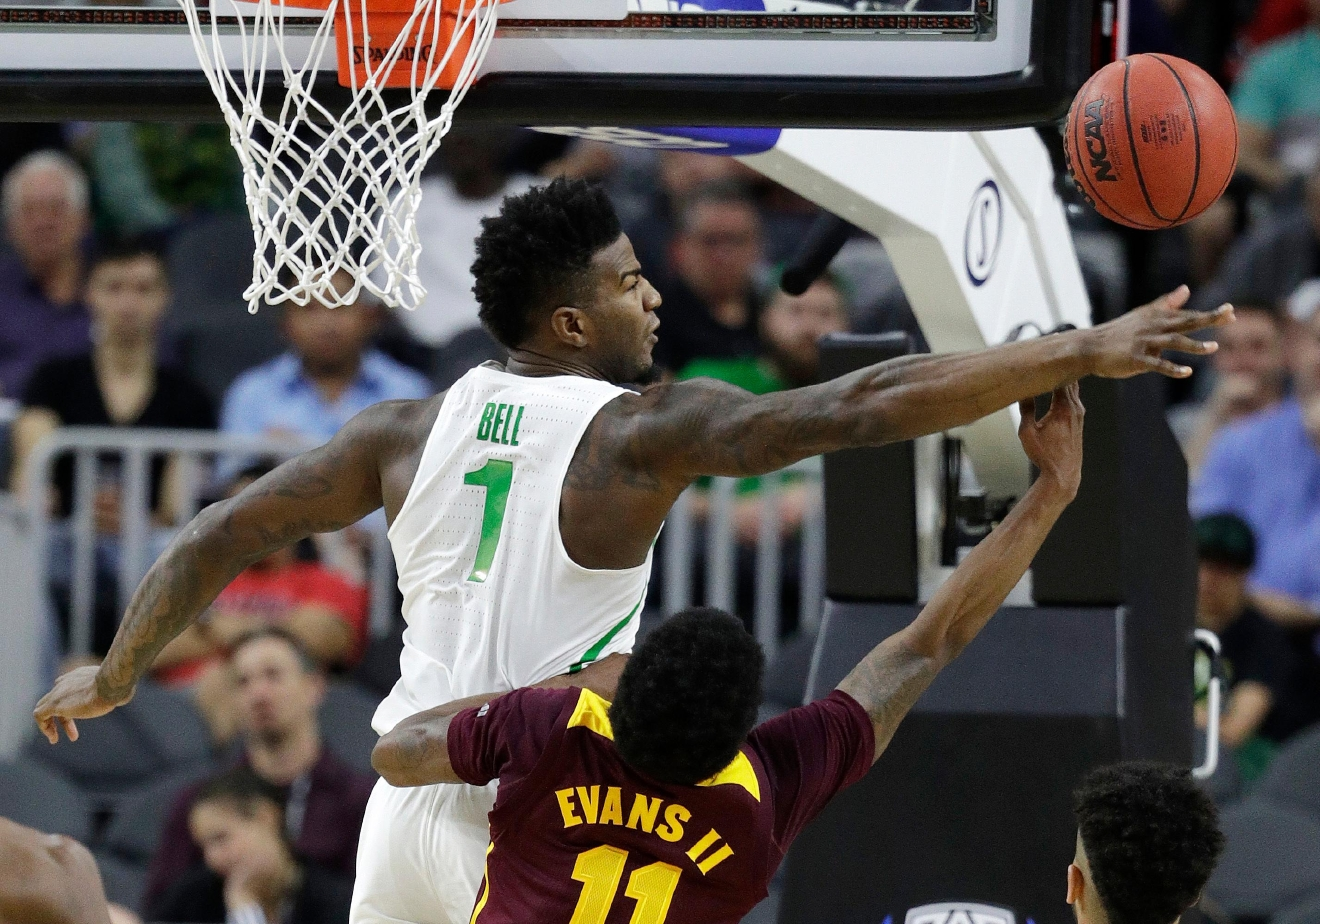 Oregon's Jordan Bell, left, tries to block a shot by Arizona State's Shannon Evans II during the first half of an NCAA college basketball game in the quarterfinals of the Pac-12 men's tournament Thursday, March 9, 2017, in Las Vegas. (AP Photo/John Locher)